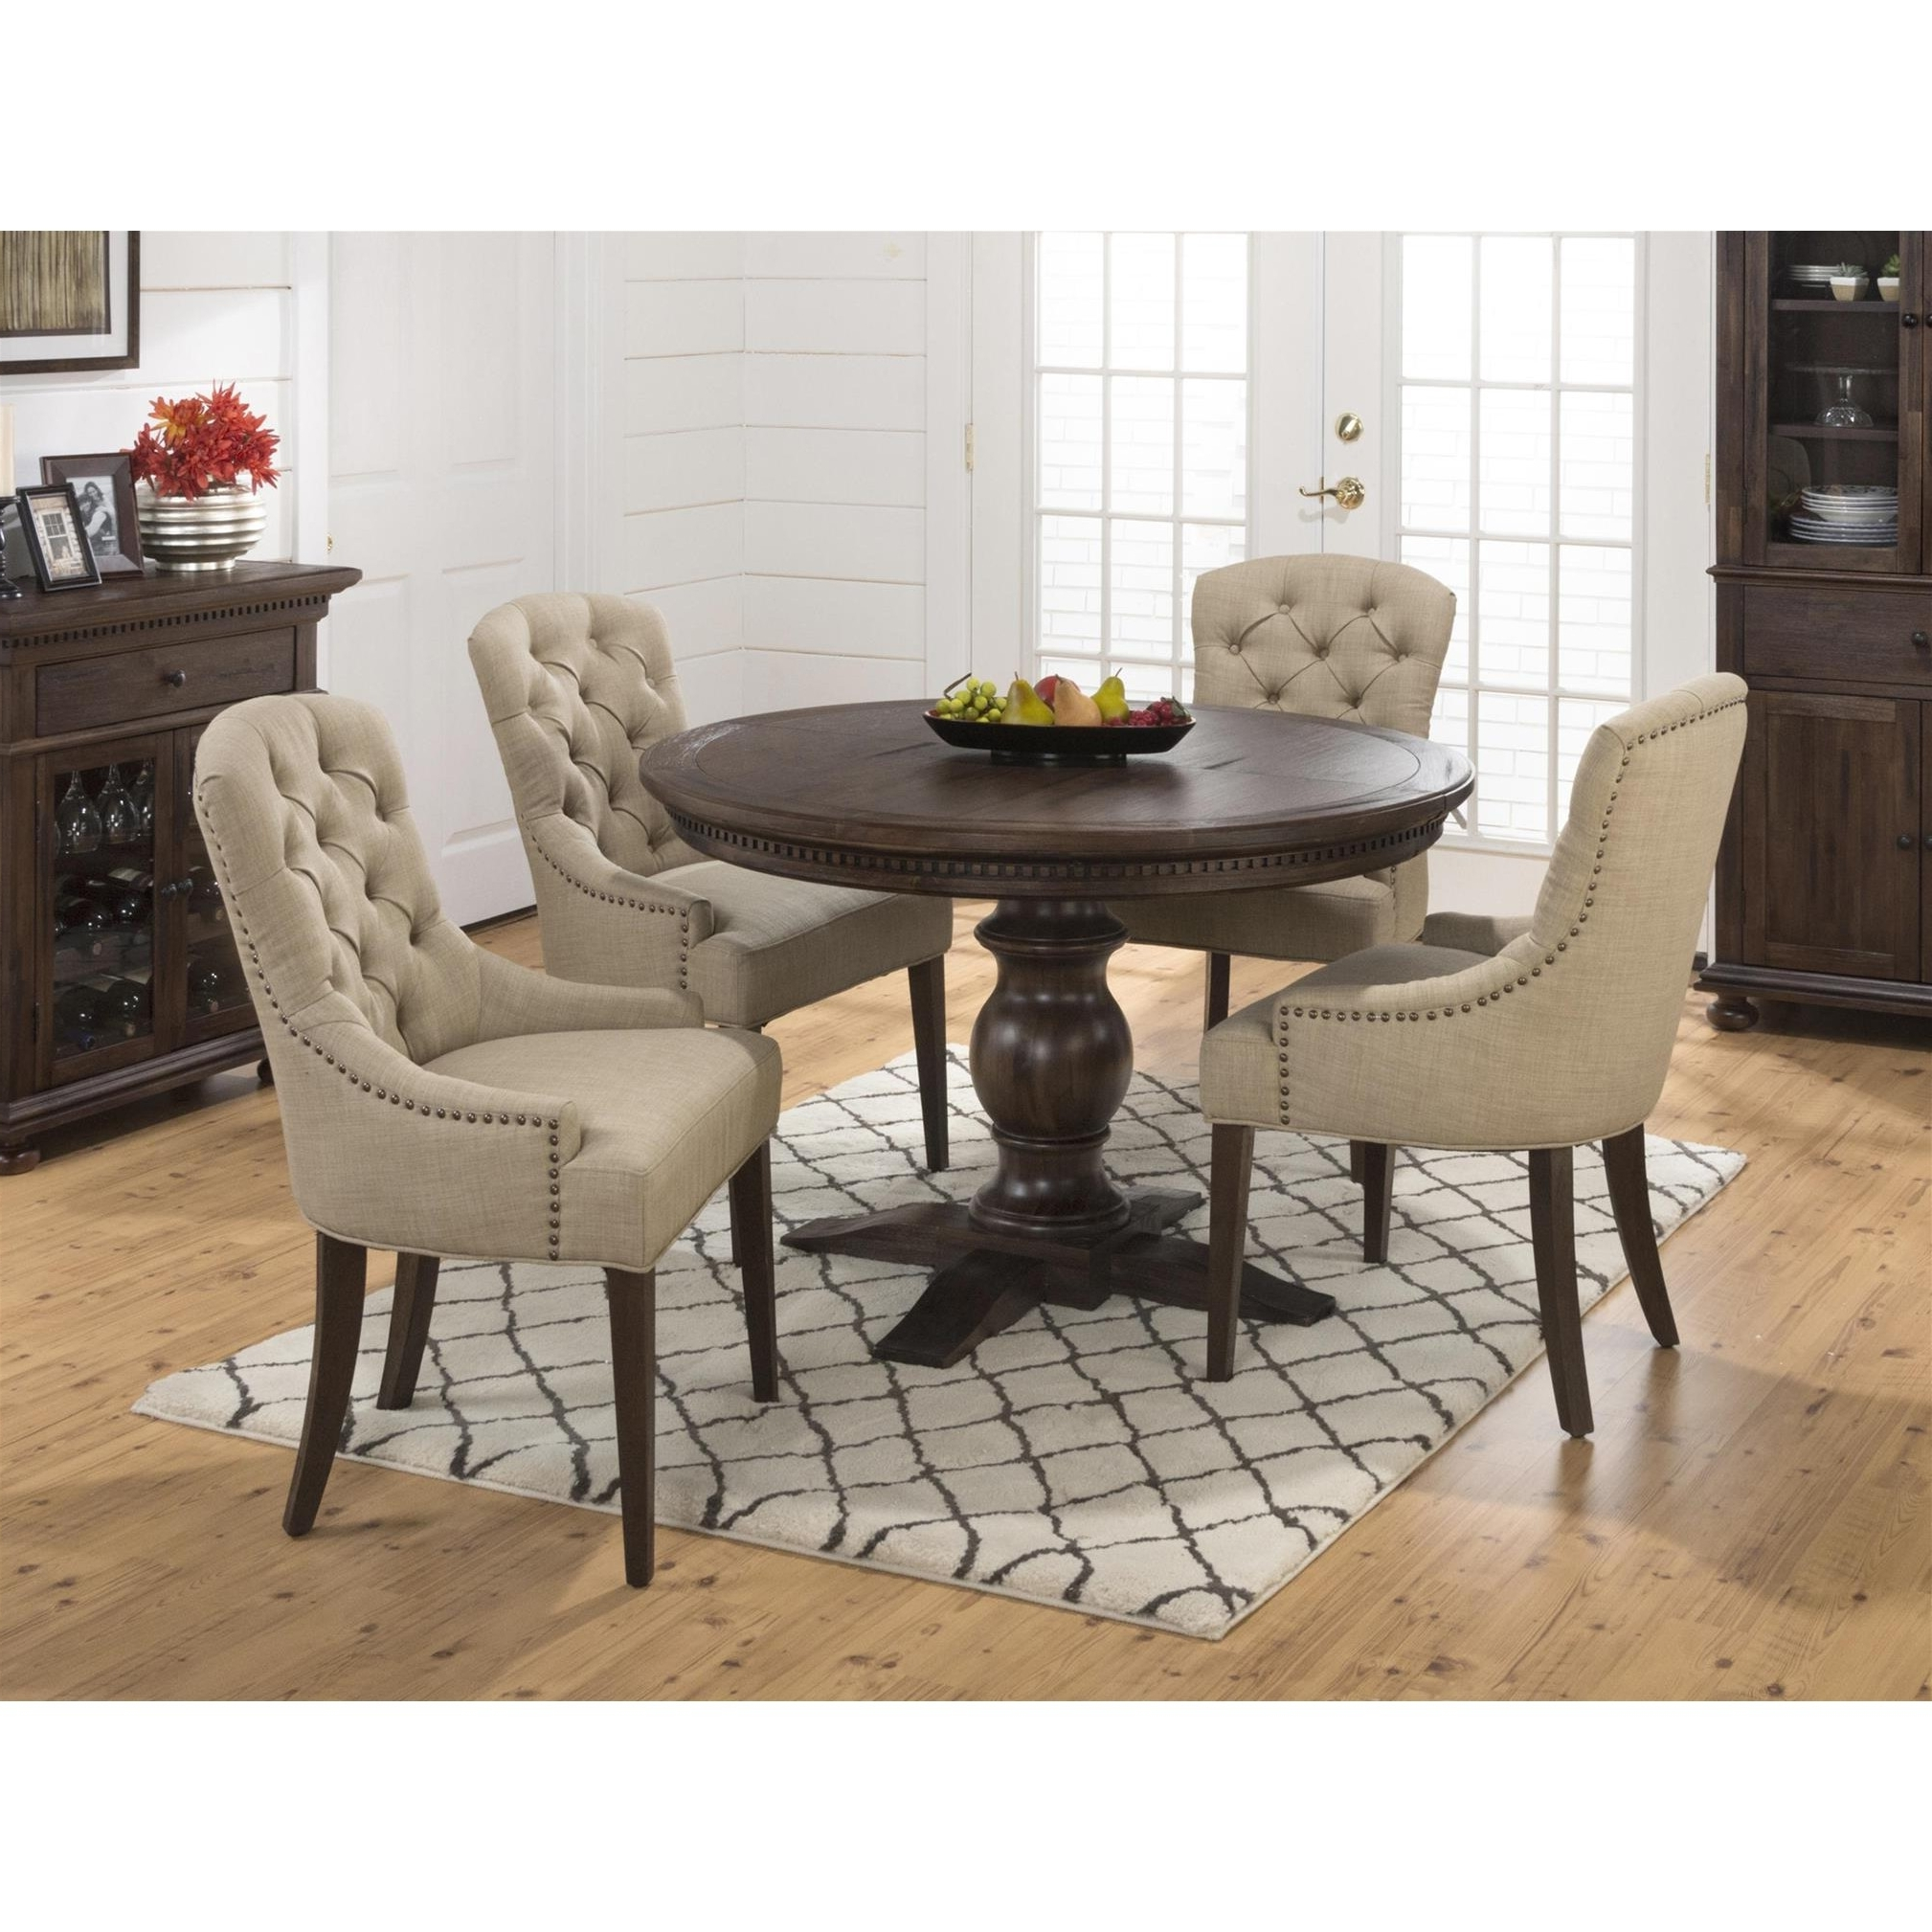 Newest Jofran Geneva Hills 5Pc Round Dining Table Set With Tufted Chairs for Craftsman 5 Piece Round Dining Sets With Side Chairs